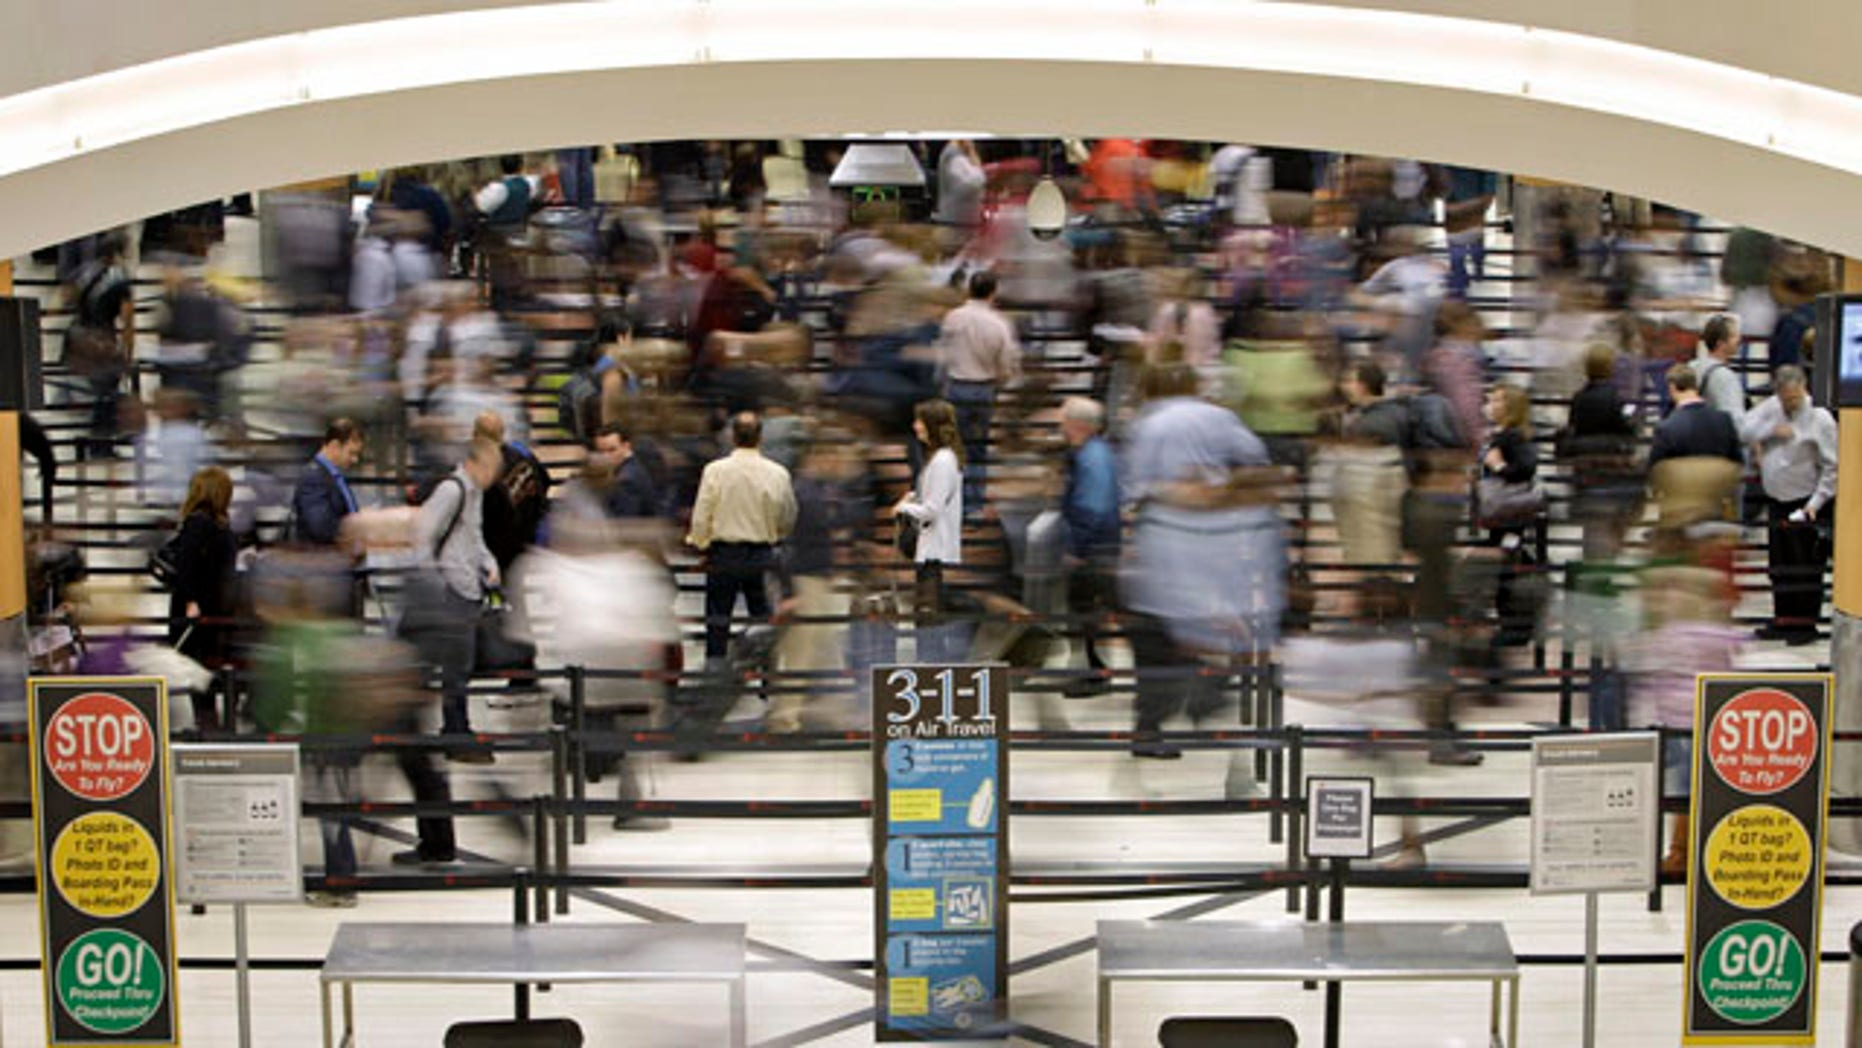 Nov. 18: Passengers move through the line at a security checkpoint at Hartsfield-Jackson Atlanta International Airport in Atlanta. Experts say the TSA faces an all but impossible task: stand as the last line against unknown terror without treating everyone as a potential terrorist.